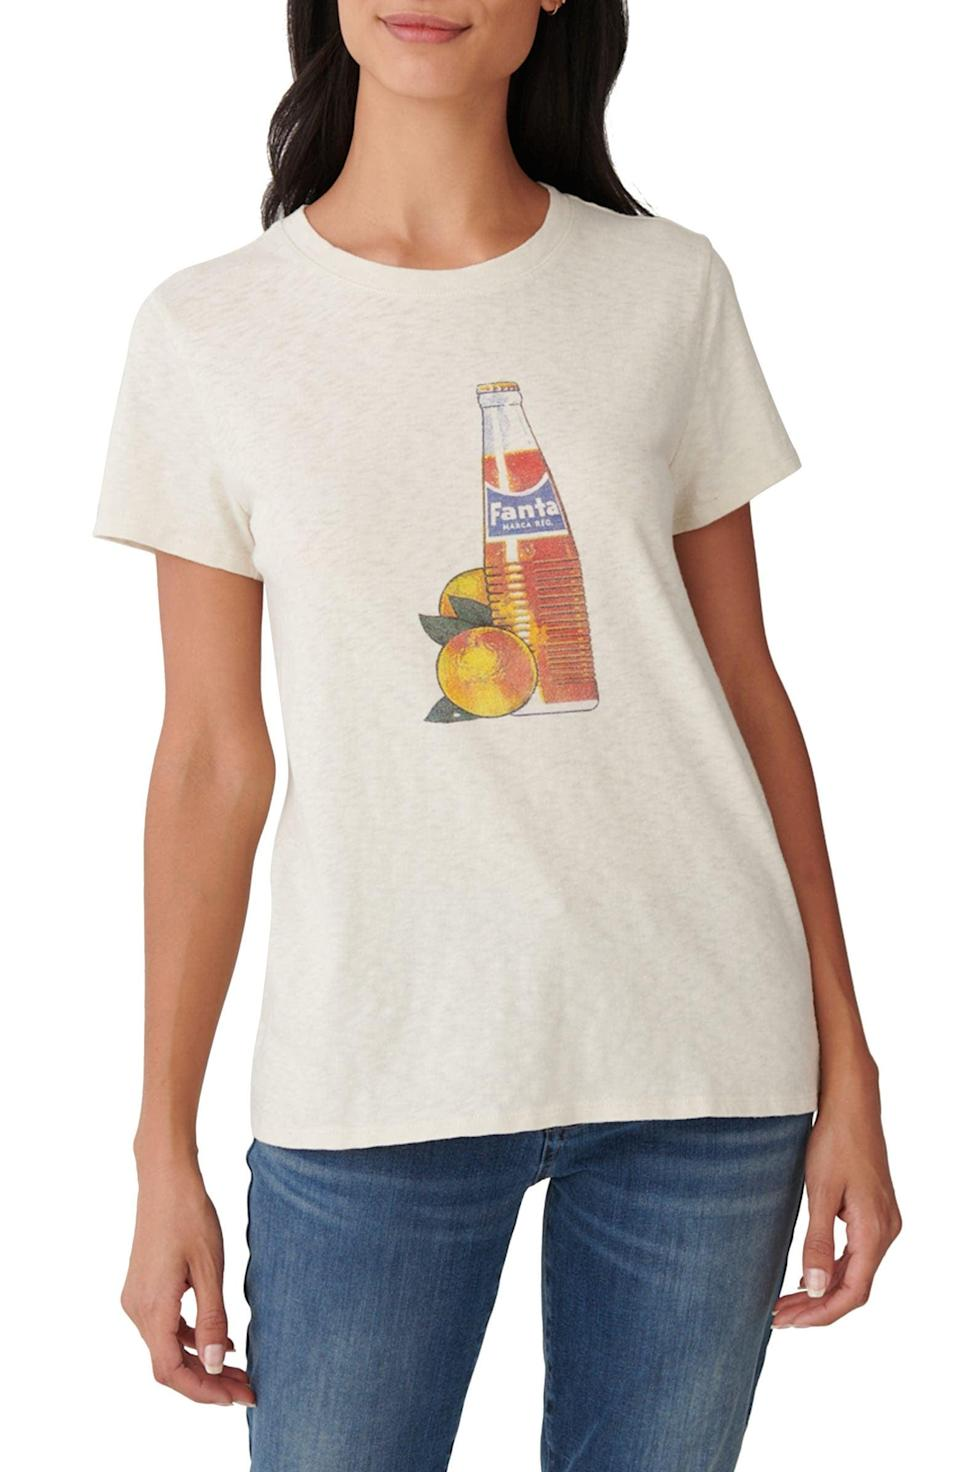 <p>This <span>Lucky Brand Fanta Bottle Cotton Graphic Tee</span> ($40) is a cool throwback.</p>